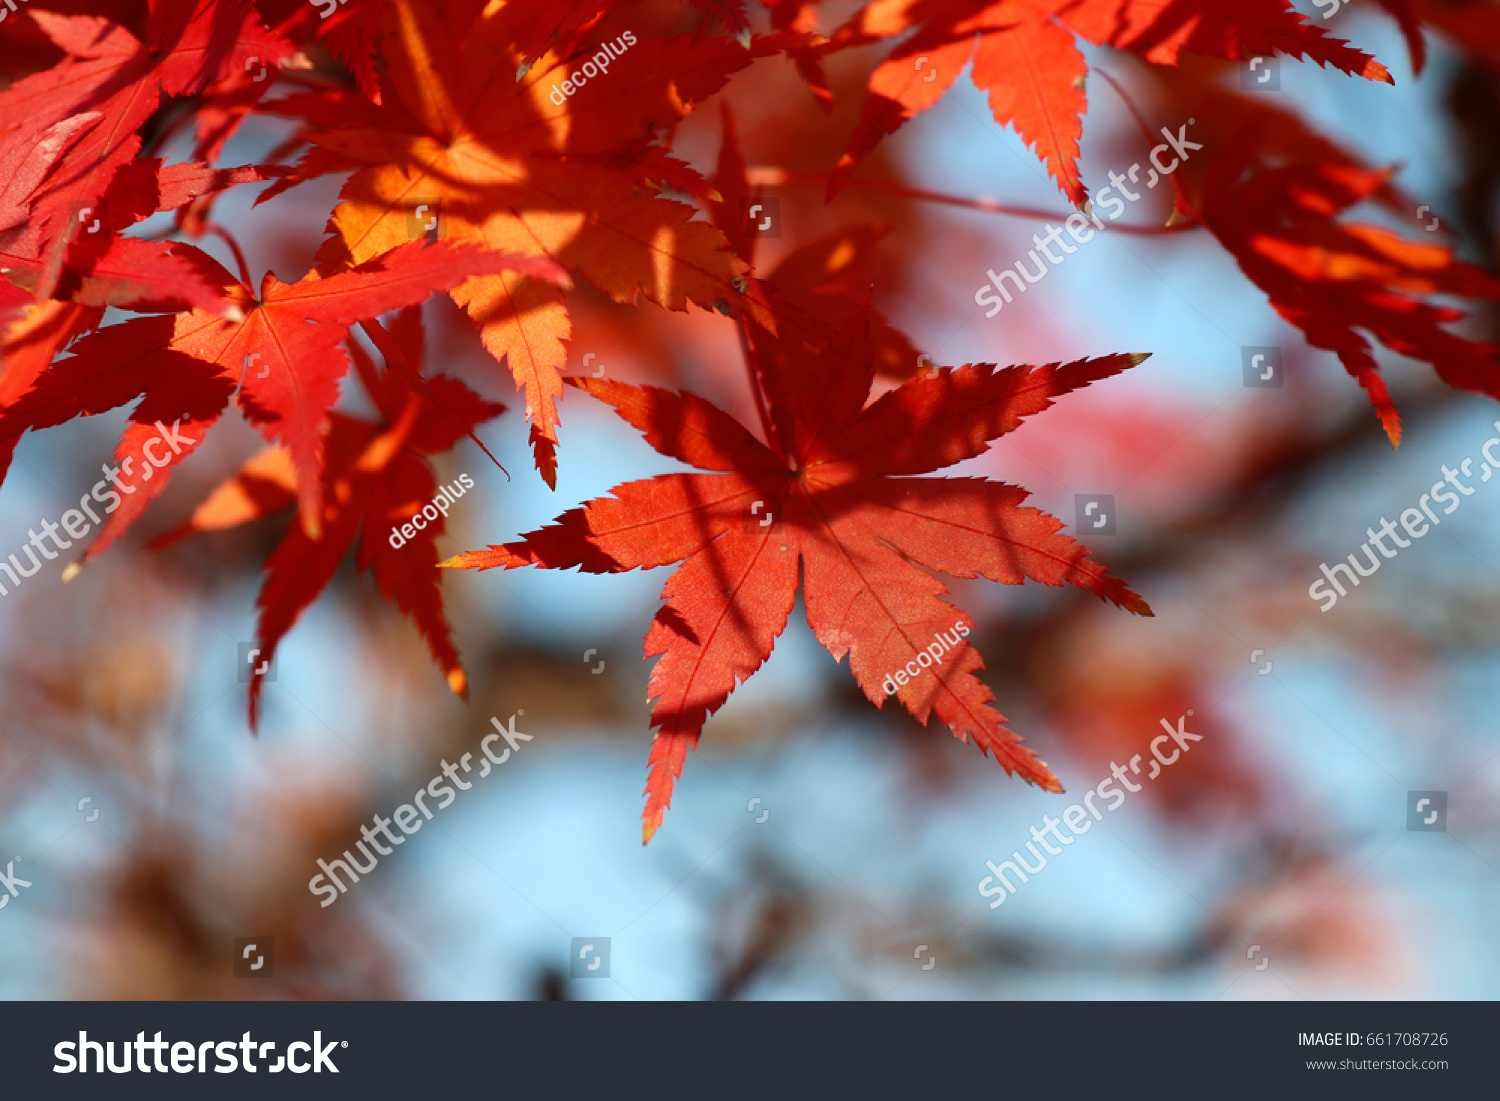 Red maple leaves blooming with sky #661708726